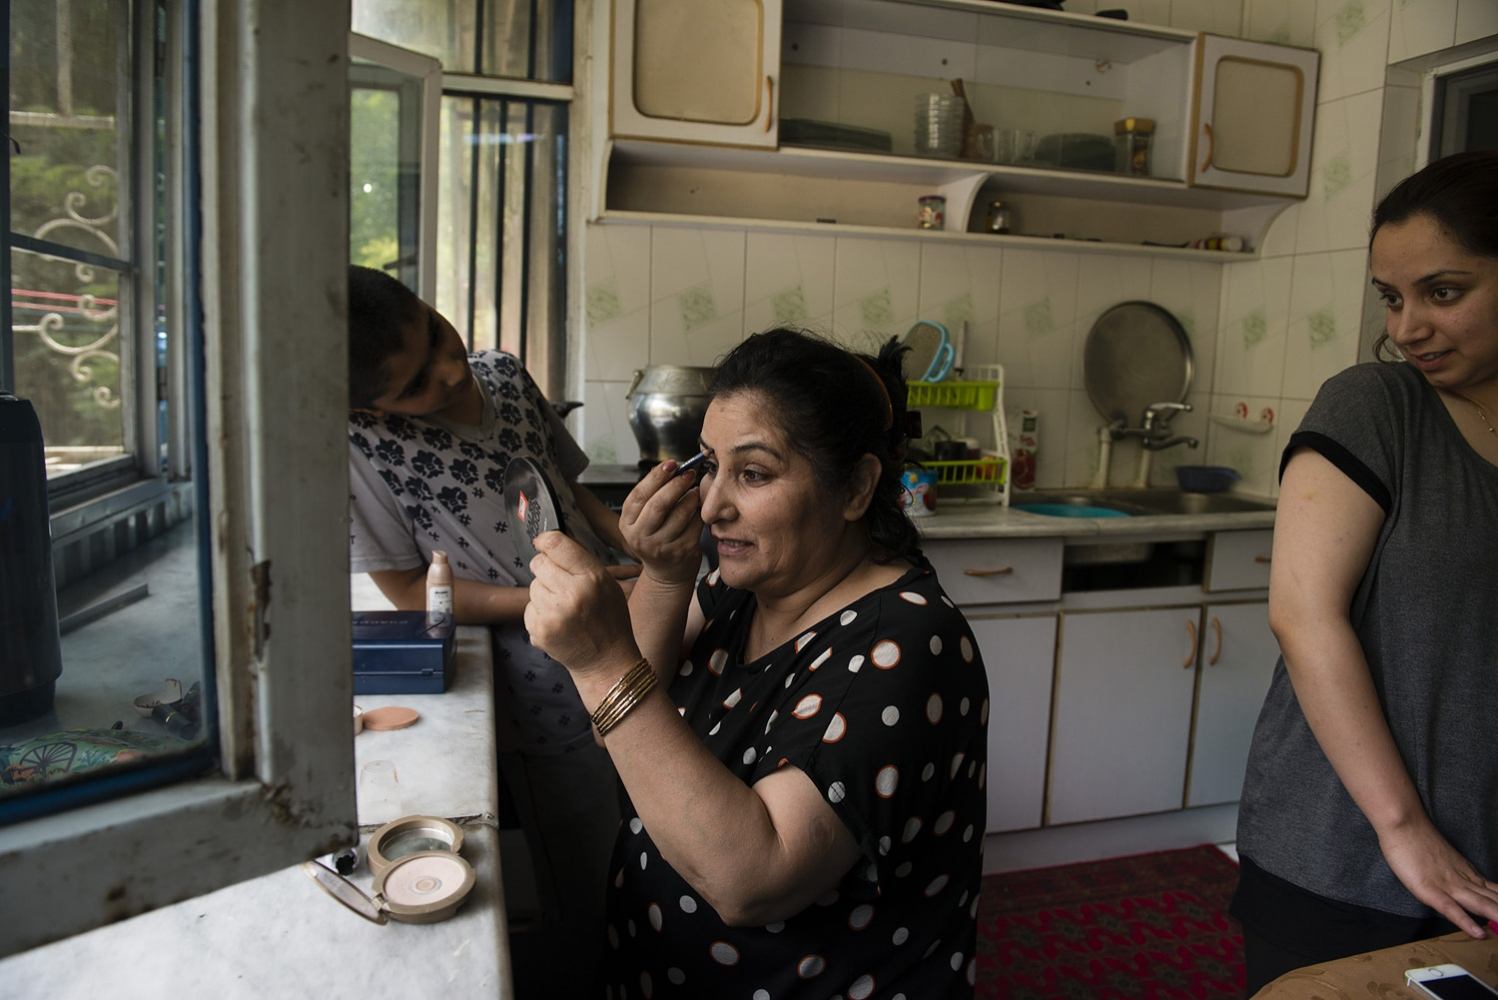 KABUL, AFGHANISTAN | 2016-08-26 | Aziza (52) puts on make up to get ready to go out after lunch. Aziza lost her husband to cancer in 2006 and brought up her 4 children on her own with the support of her brother-in-law, a prominent Afghan-Australian musician. She was never forced to remarry but temporarily lived with her brother-in-law's family in the same apartment, which she recalls to be the most difficult time. She works at the National TV and Radio of Afghanistan.